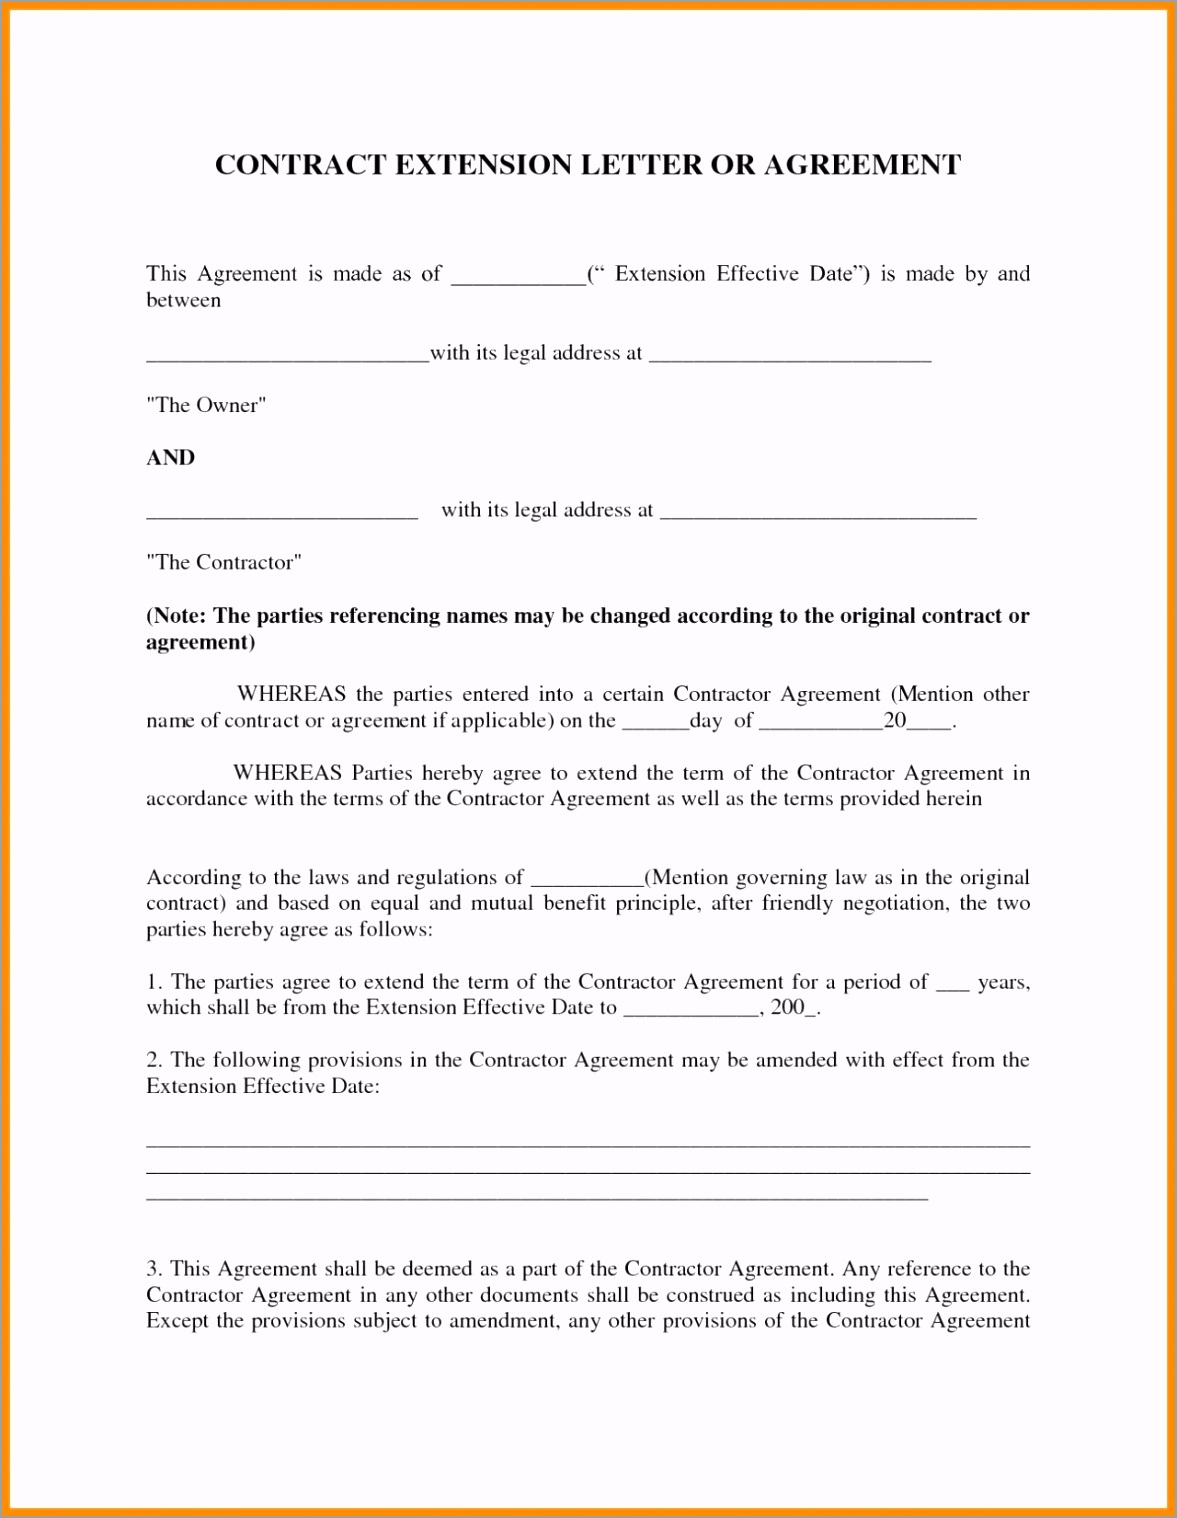 Contract Extension Agreement Letter Example terwe